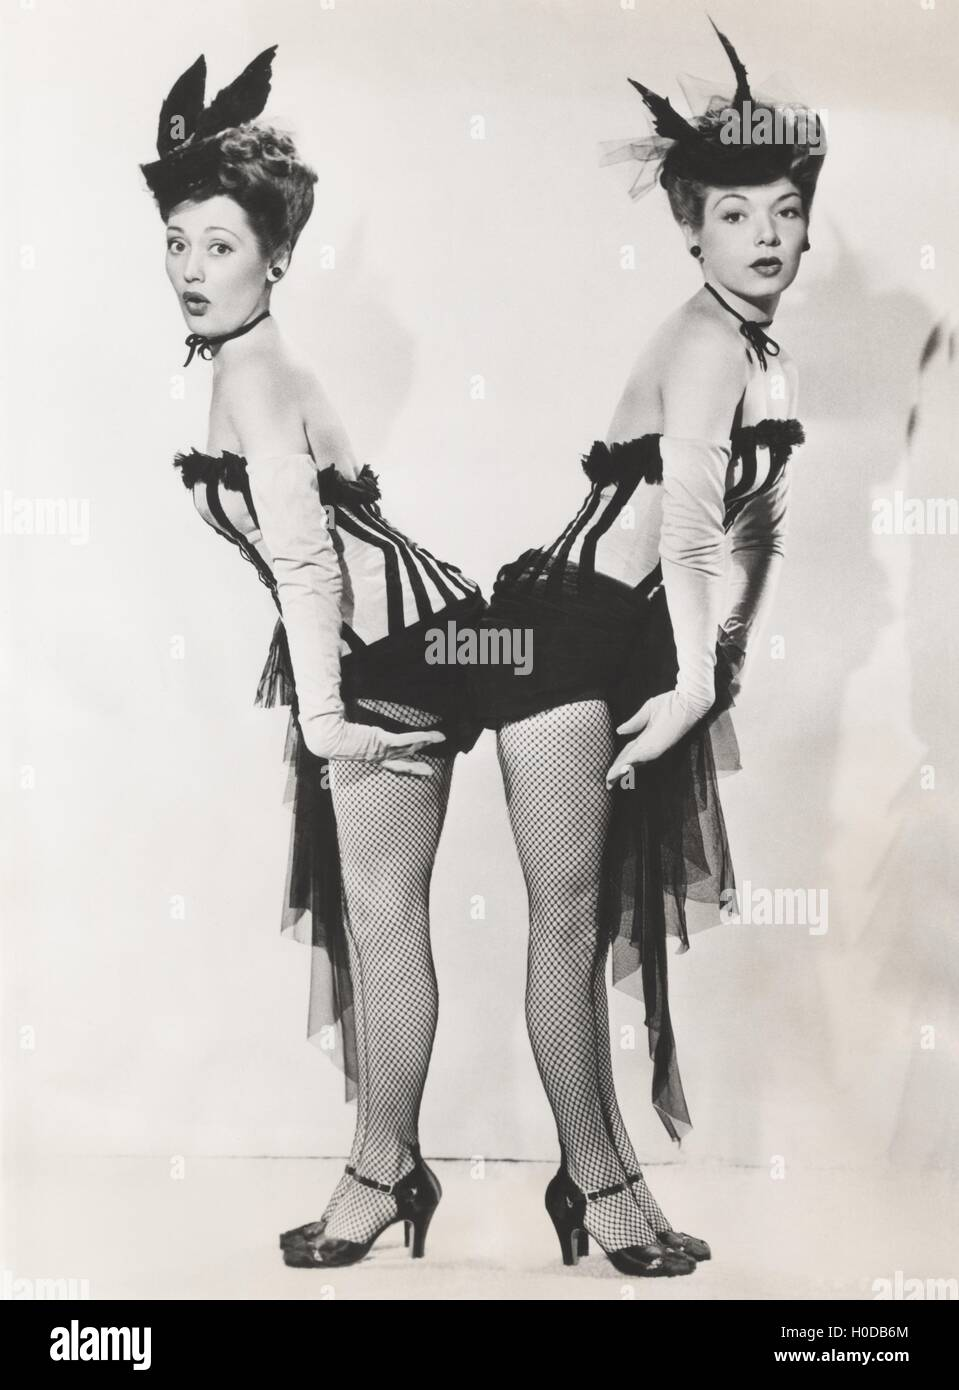 Women in matching costumes standing back to back - Stock Image